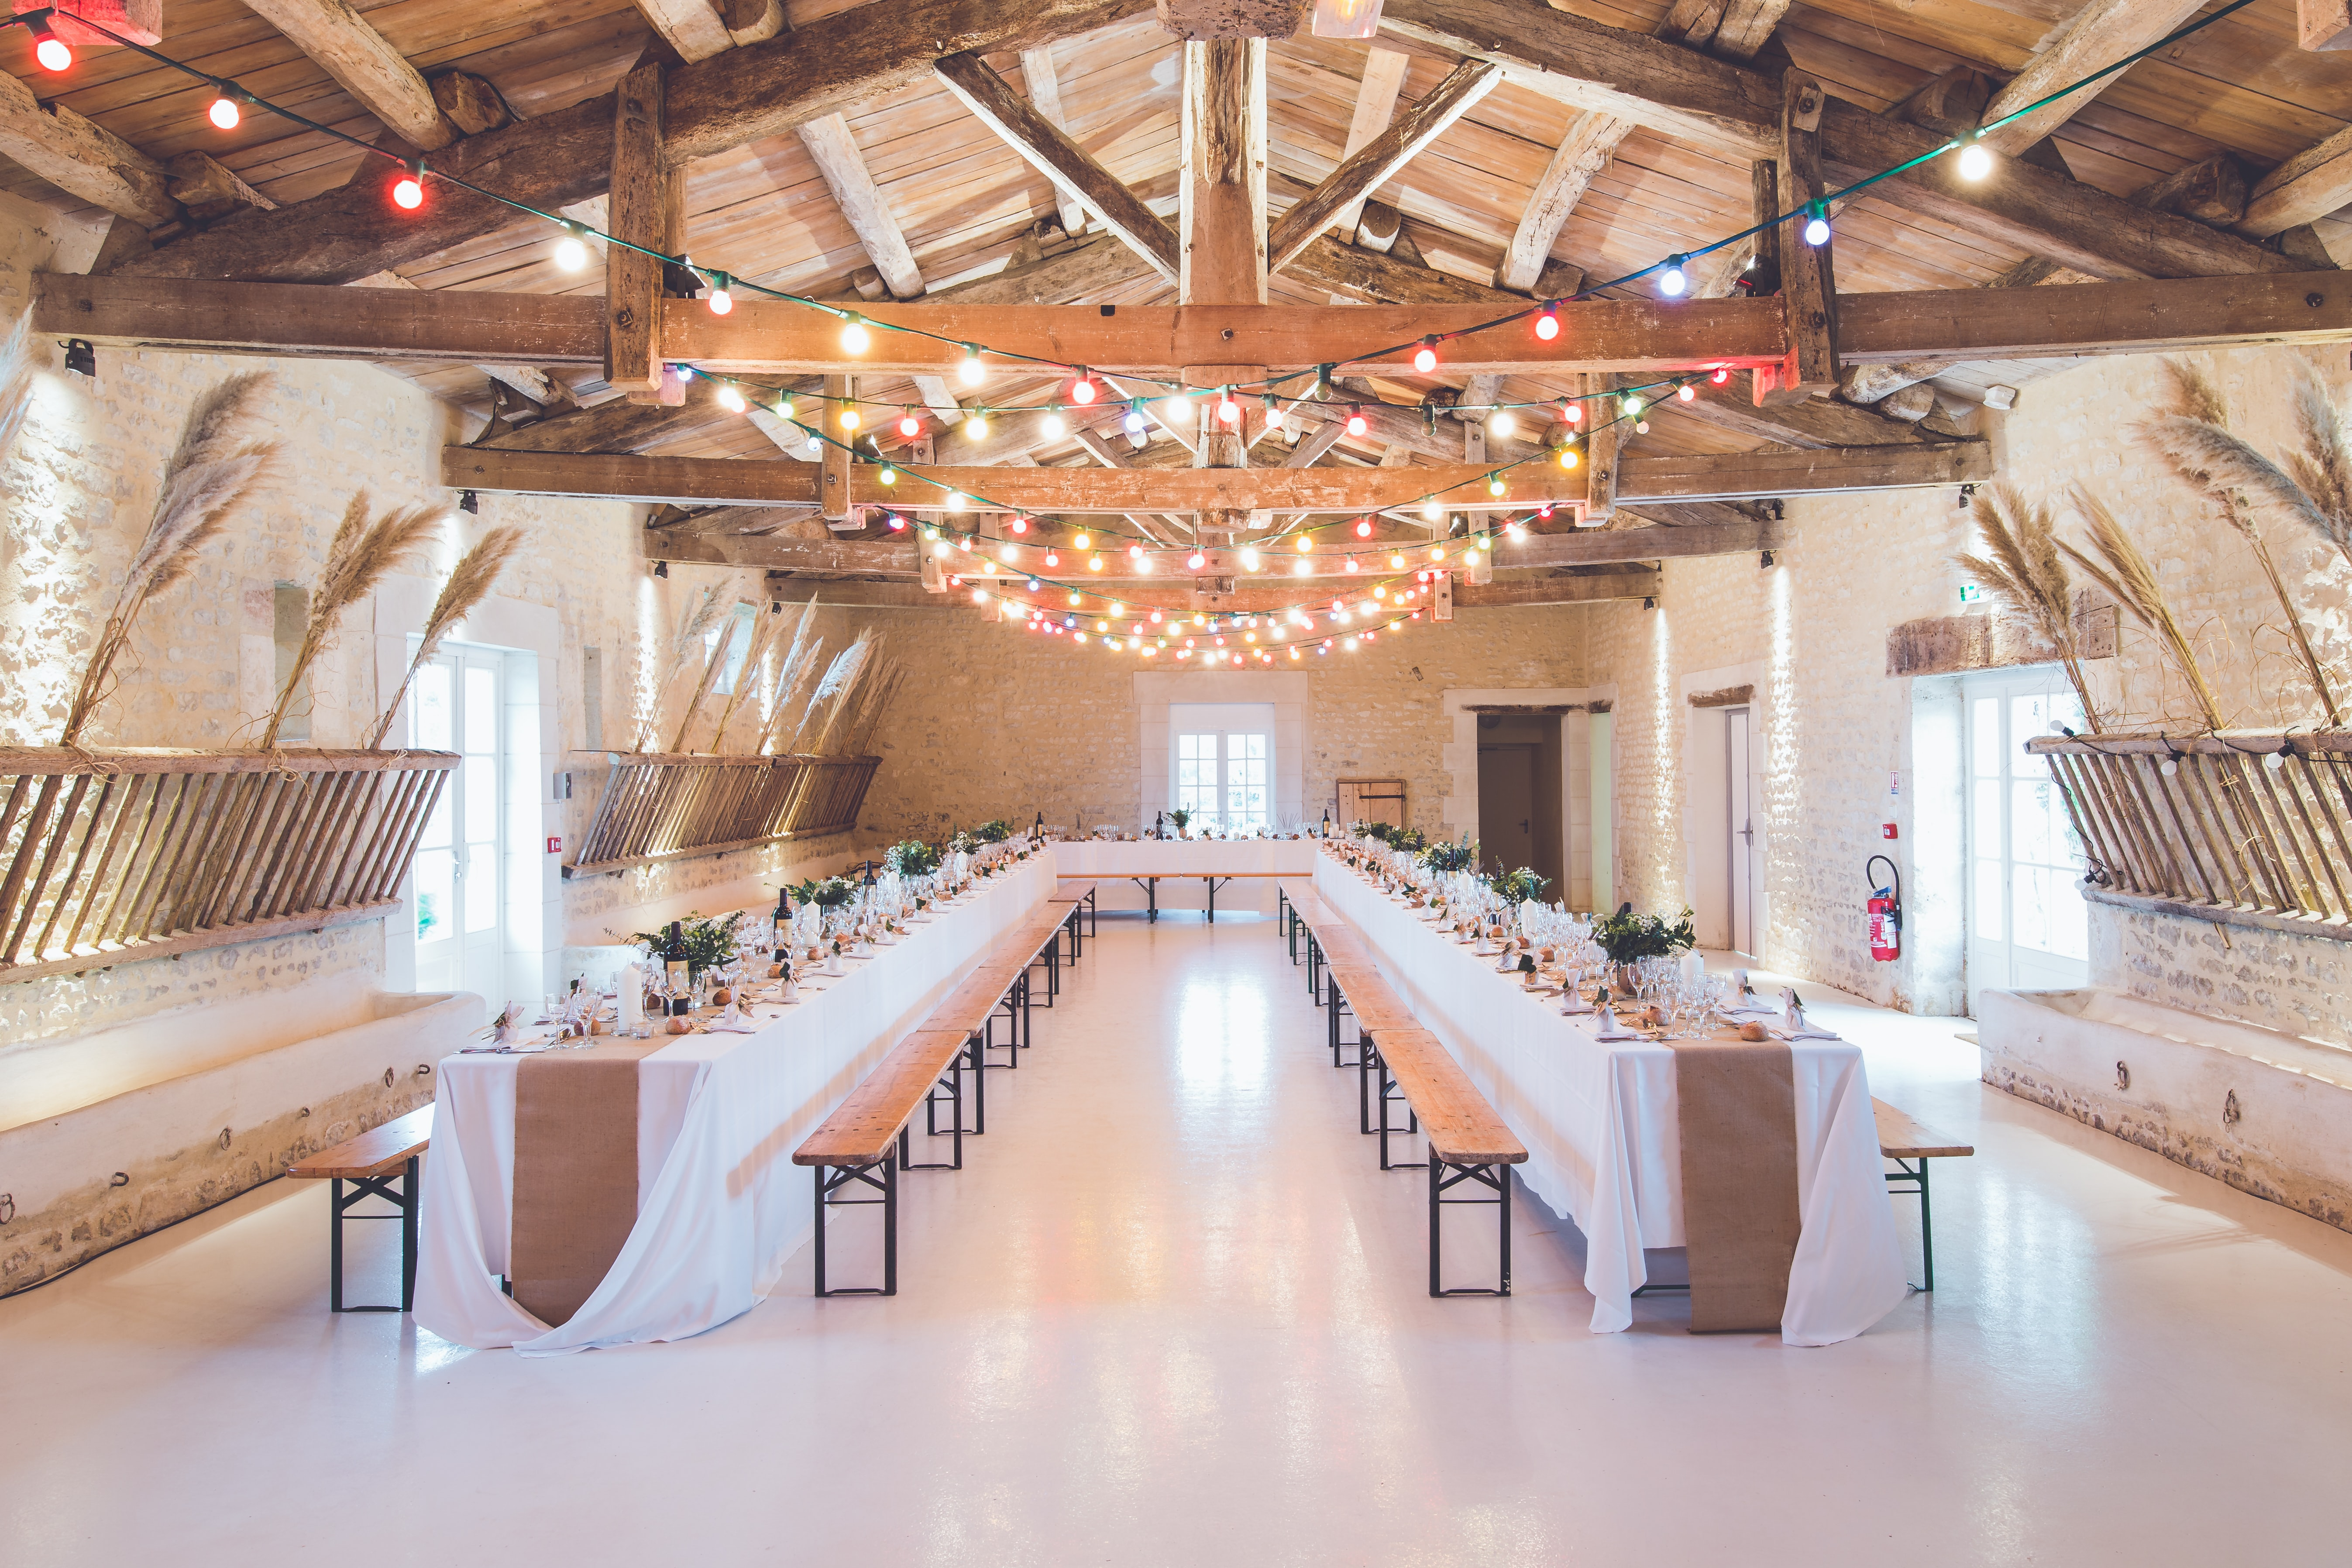 Wedding reception tables with wooden benches and string lights above them at Abbaye de la Grâce-Dieu